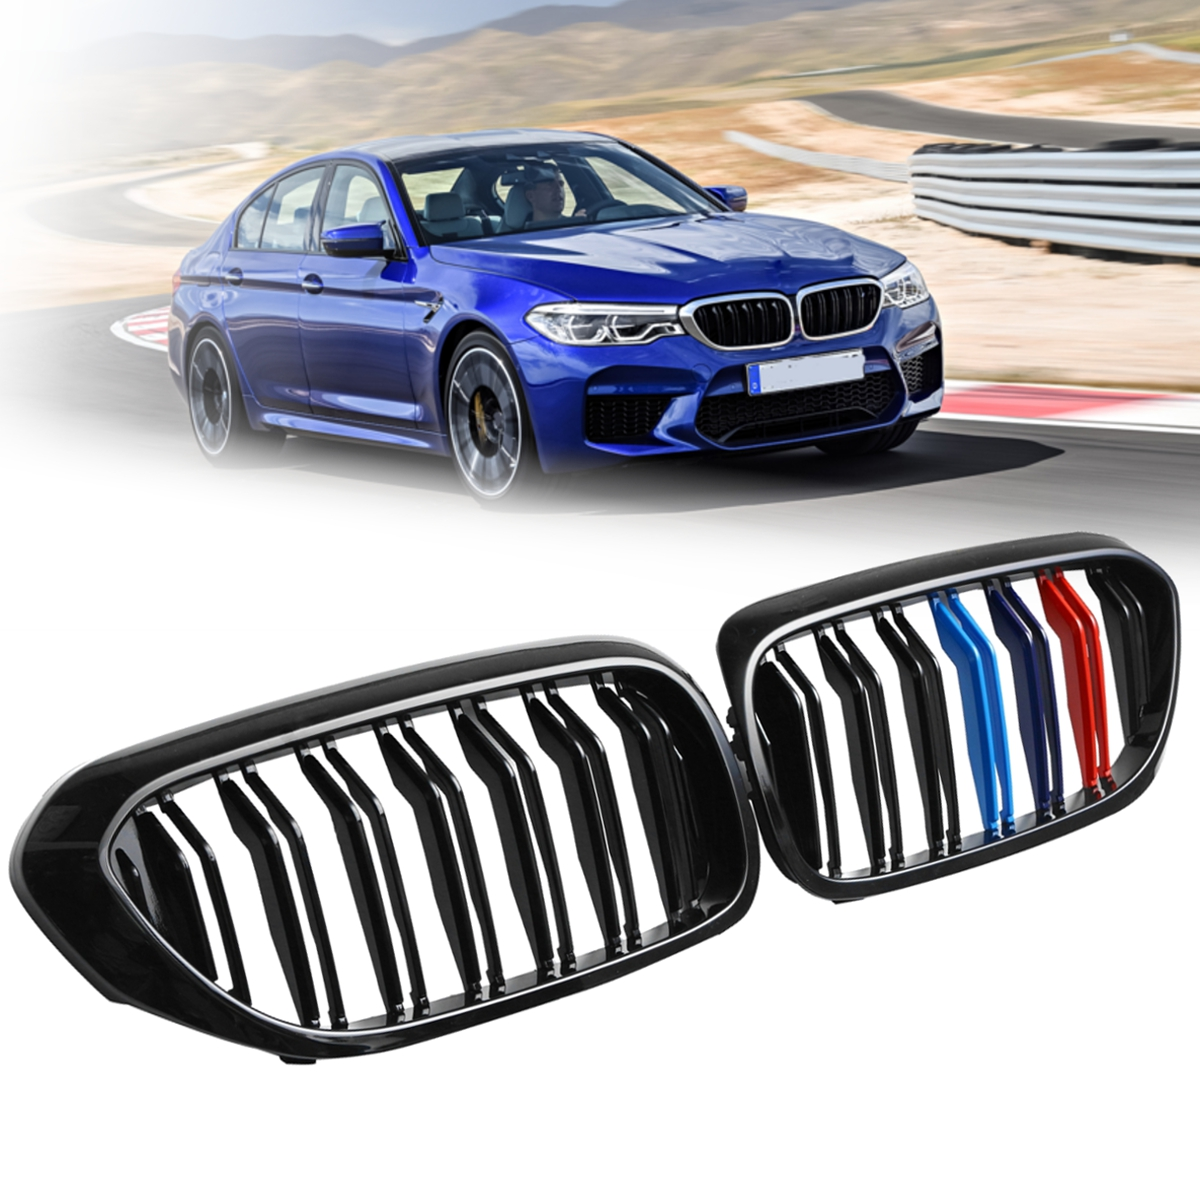 Pair Gloss Black M Color/Gloss Black Front Dual Slats Grilles For BMW 5 Series G30 G38 2017 Car styling Front Racing Grille цена 2017